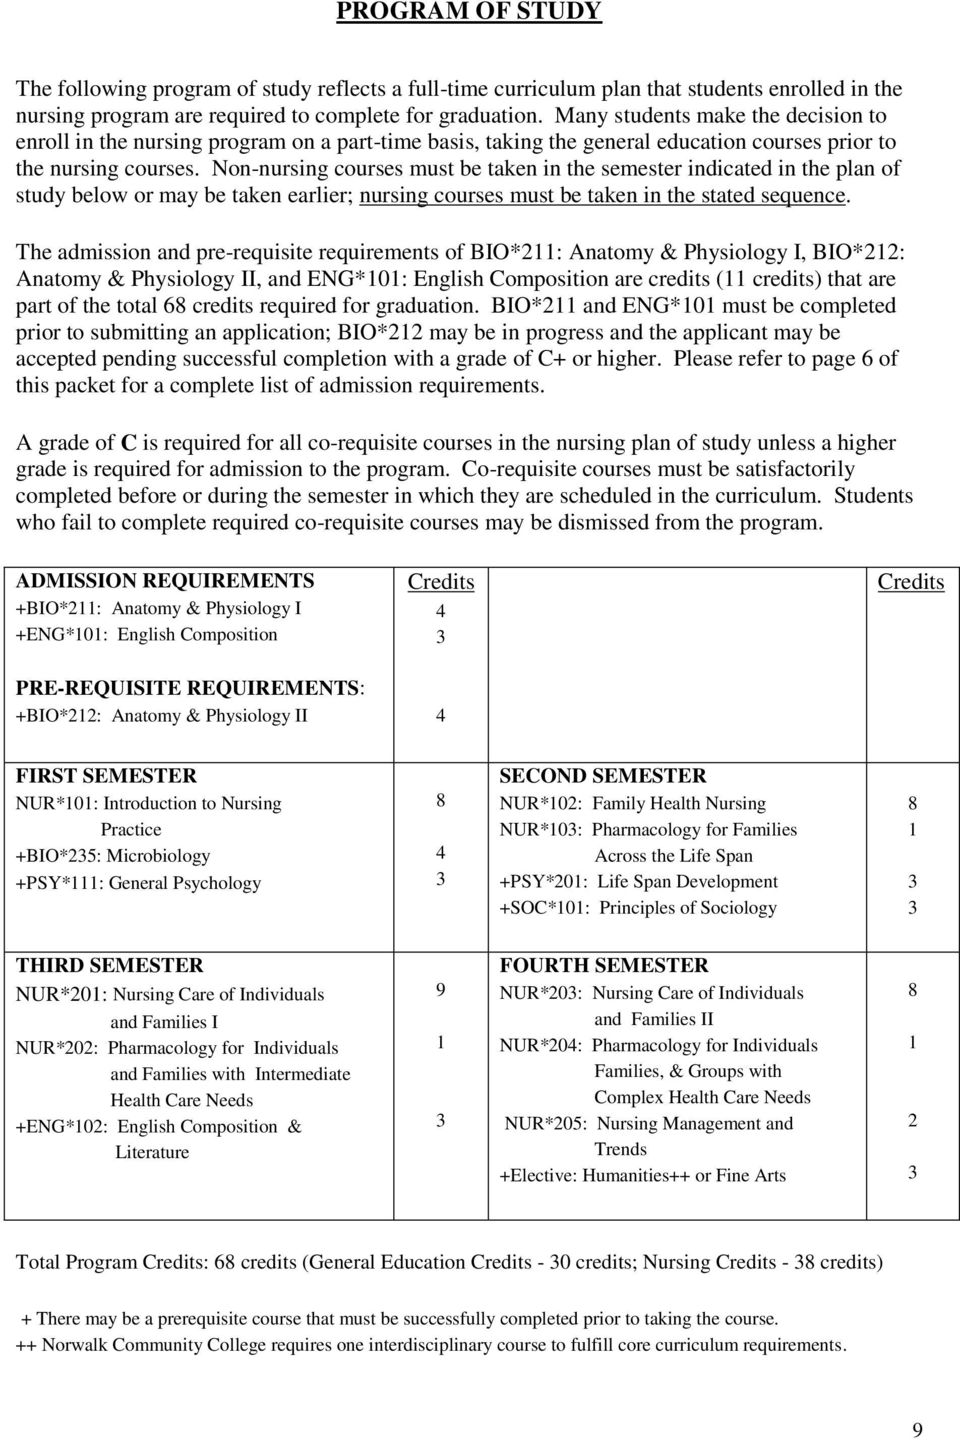 Non-nursing courses must be taken in the semester indicated in the plan of study below or may be taken earlier; nursing courses must be taken in the stated sequence.